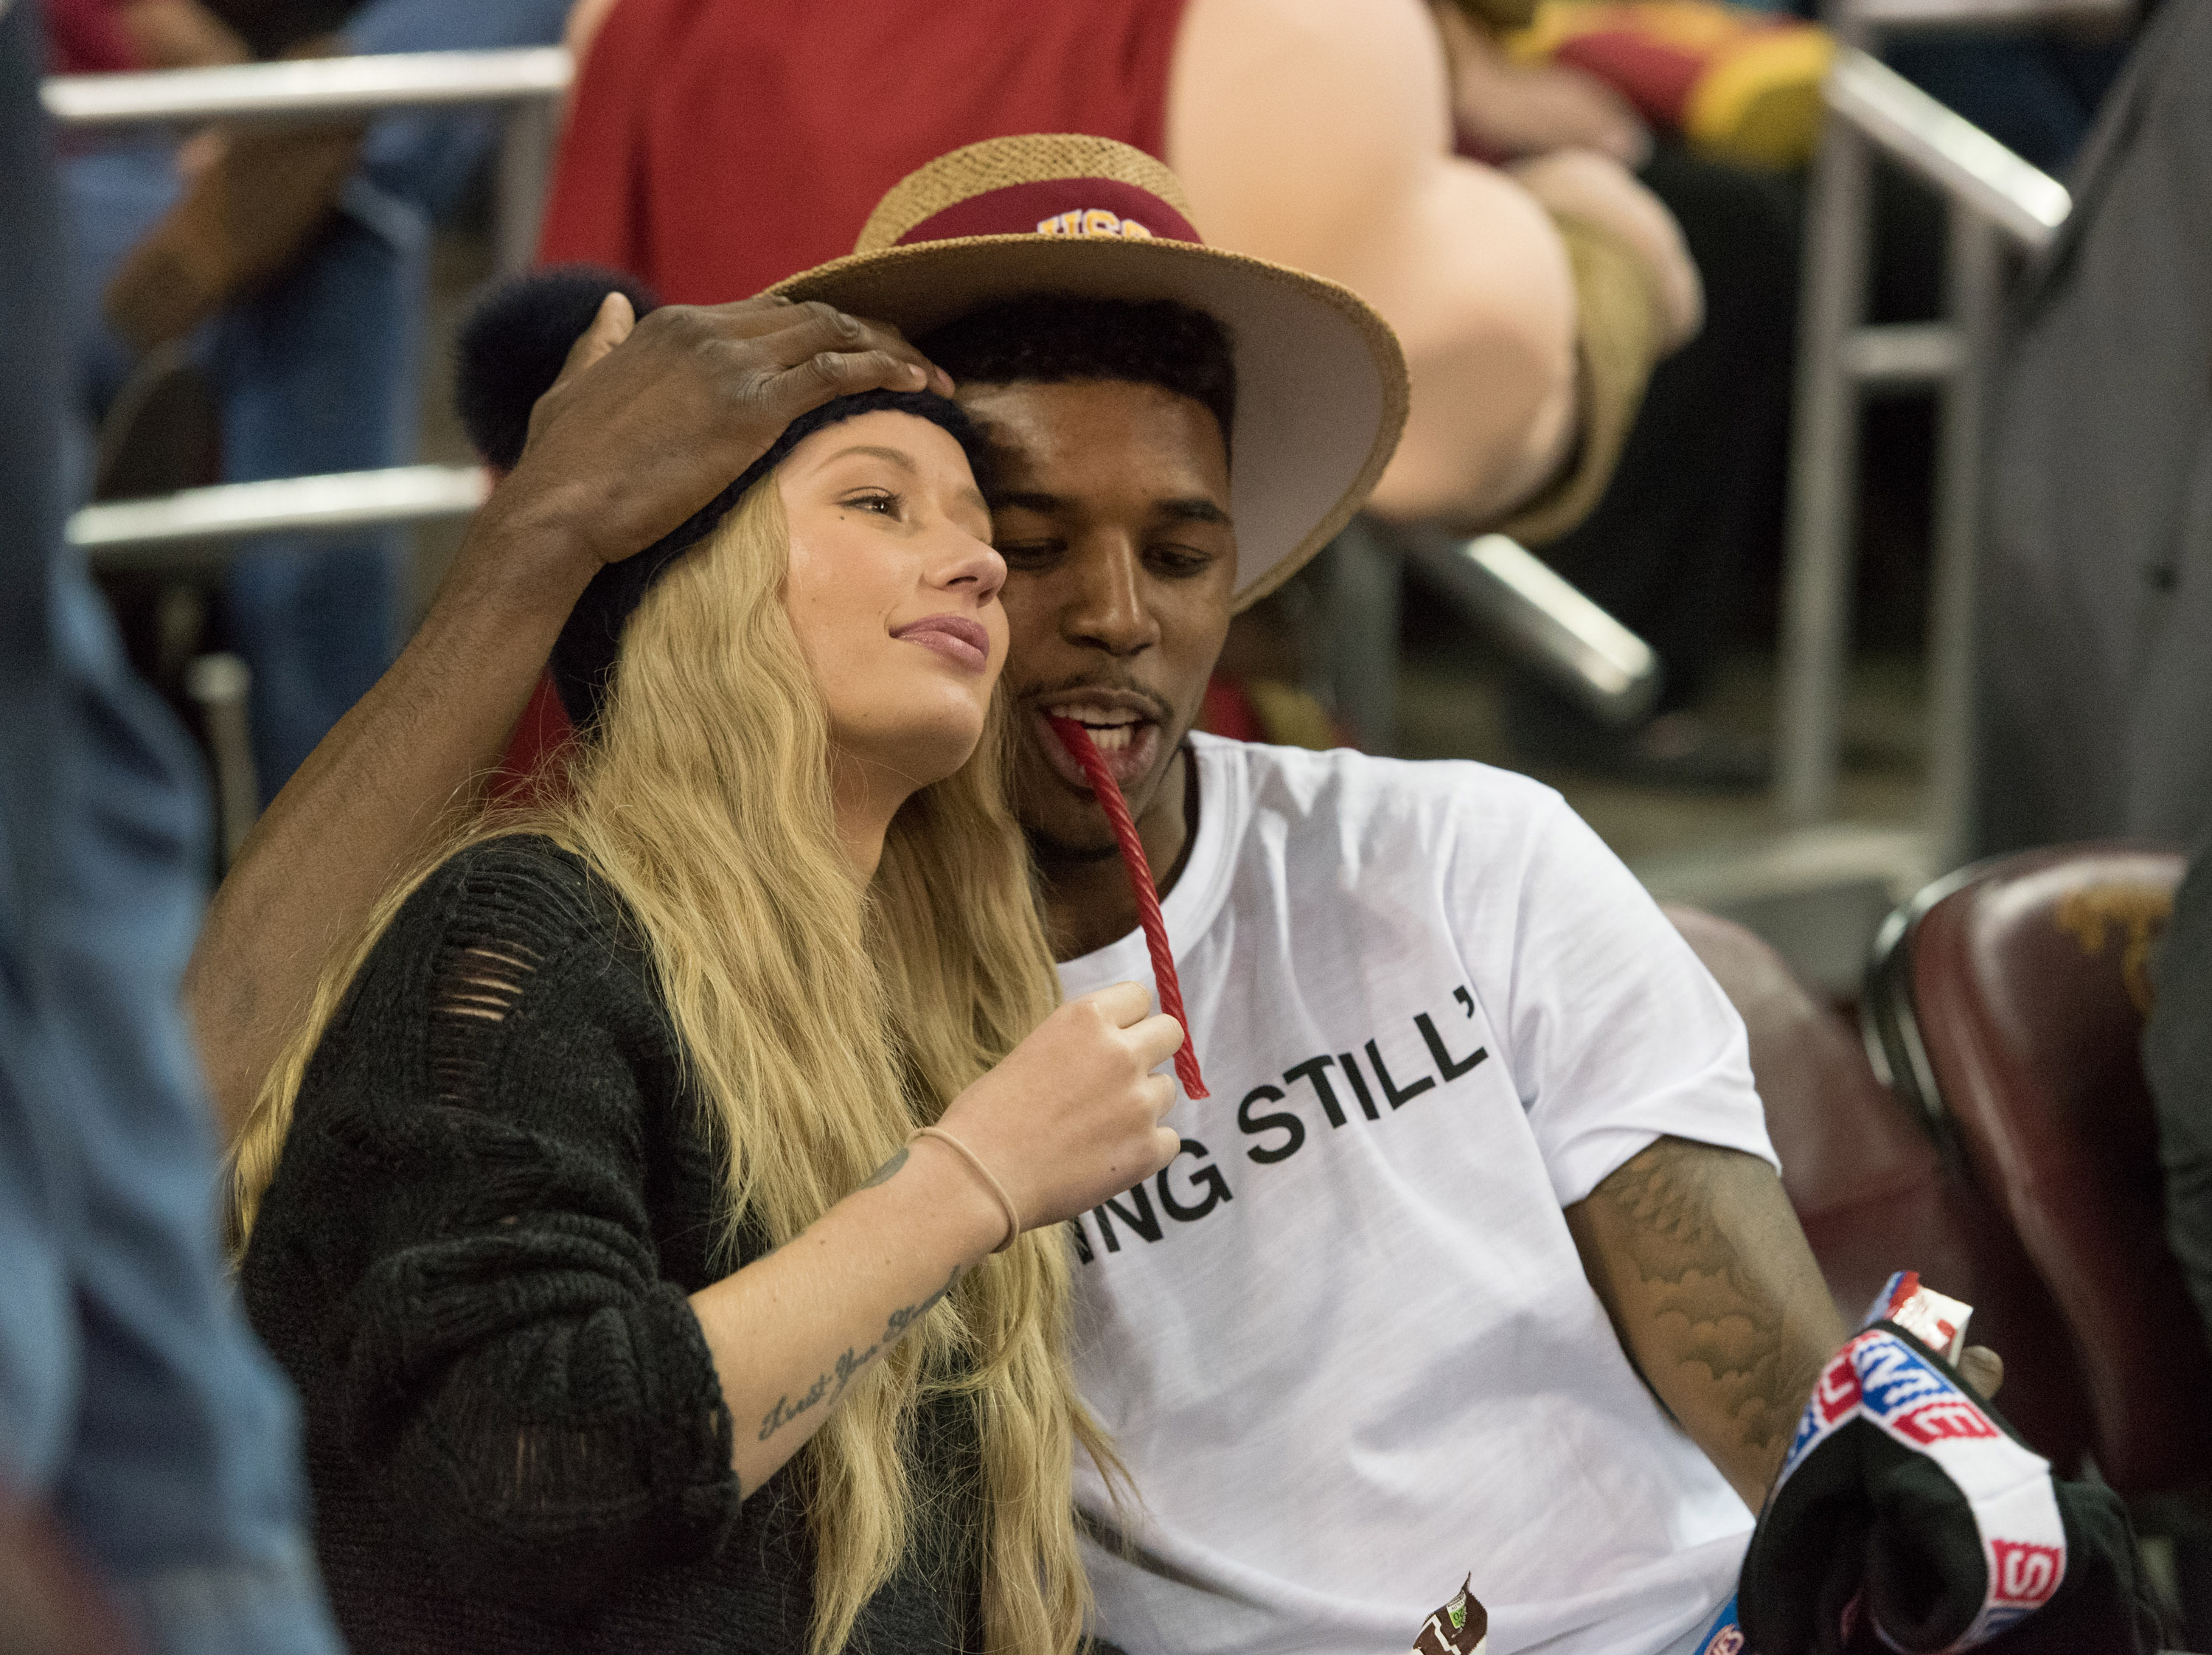 Rapper Iggy Azalea and Nick Young are seen on January 14, 2015 at the UCLA Men's Basektball Game at The Galen Center in Los Angeles, California